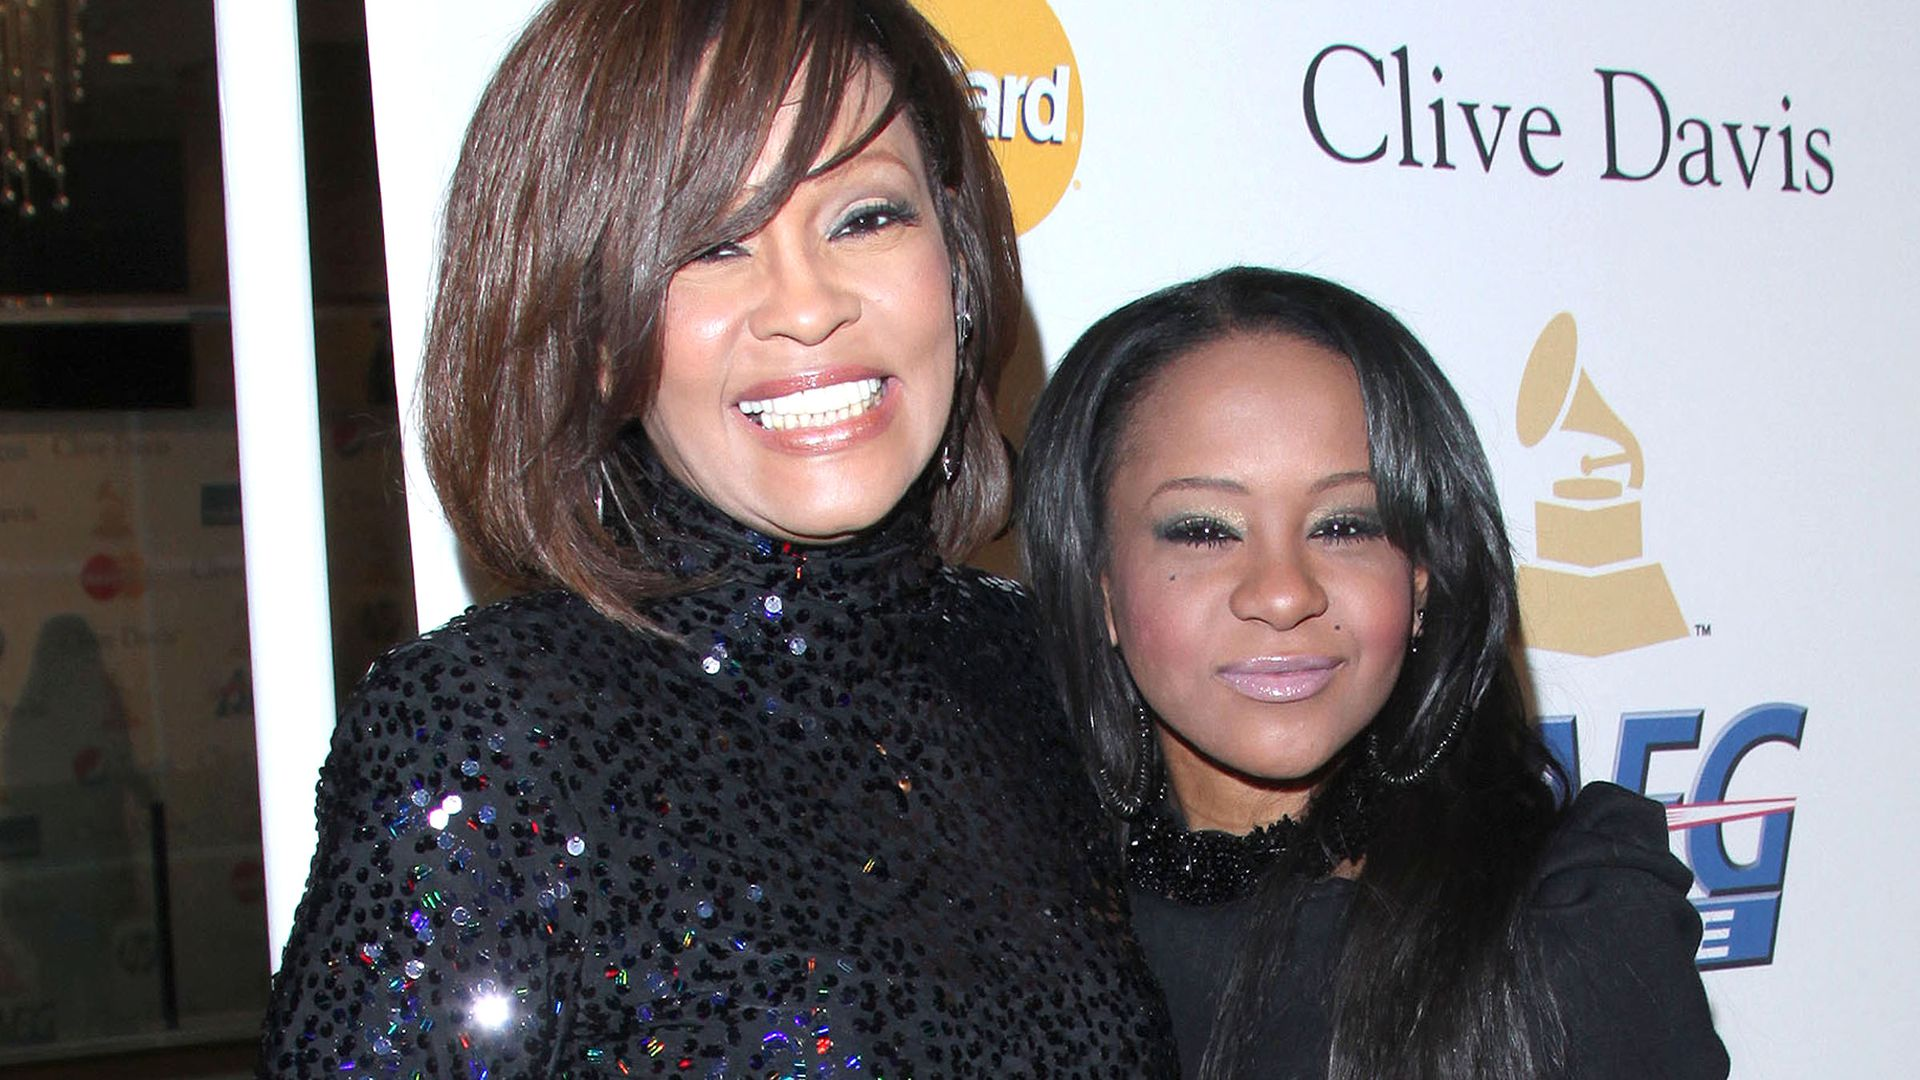 Wars Ihr Ex Familie Houston Will Bobbi Kristina Exhumieren